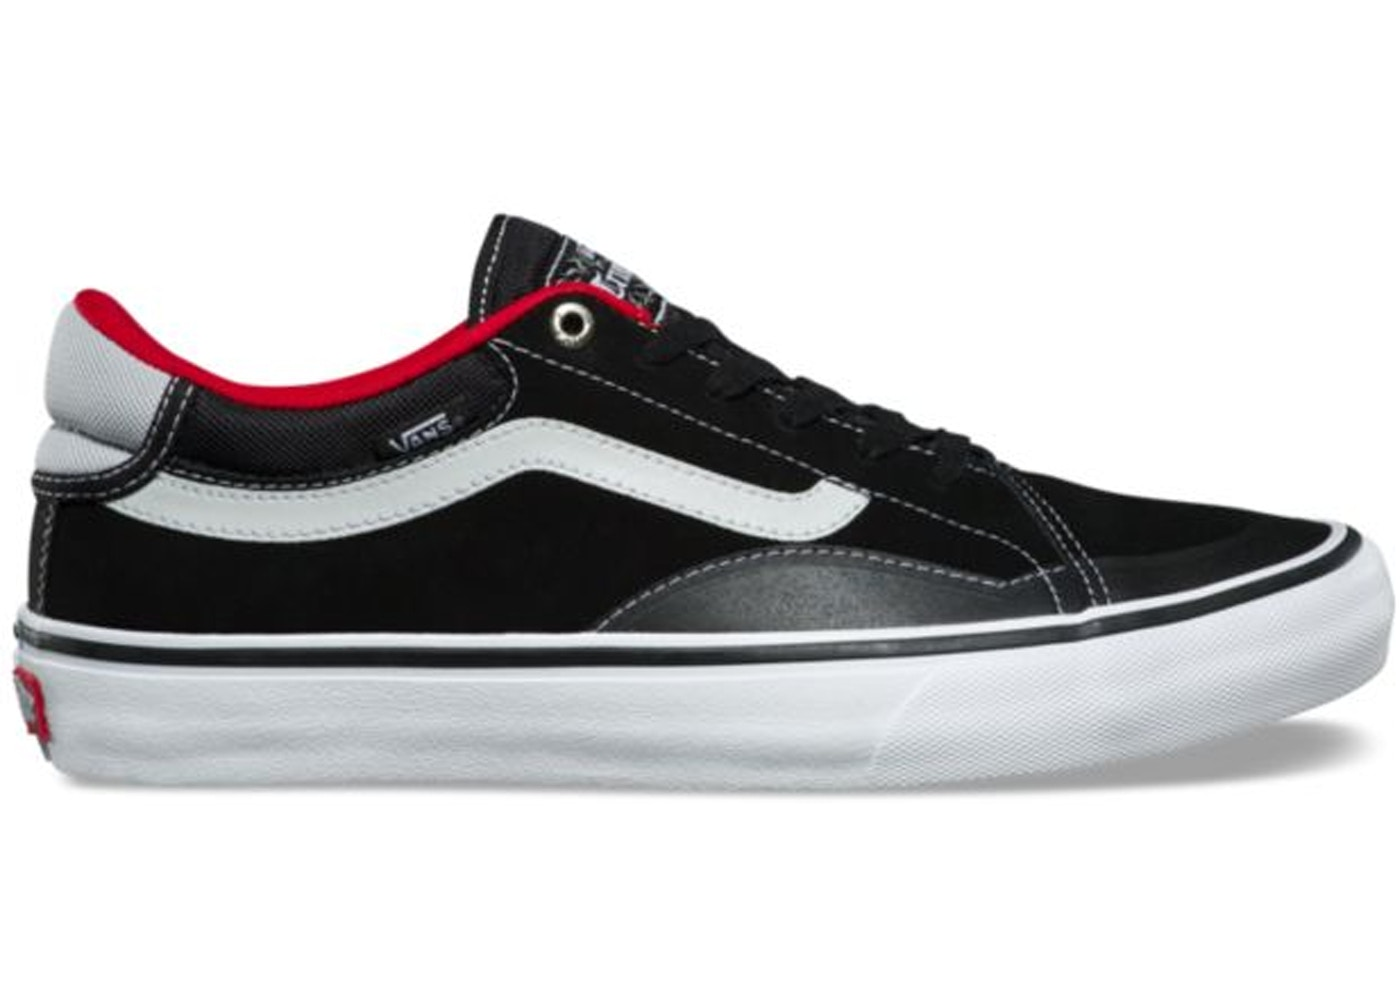 060c982bfd89 Vans TNT Advanced Prototype Tony Trujillo Black White - VN0A3TJXBWT